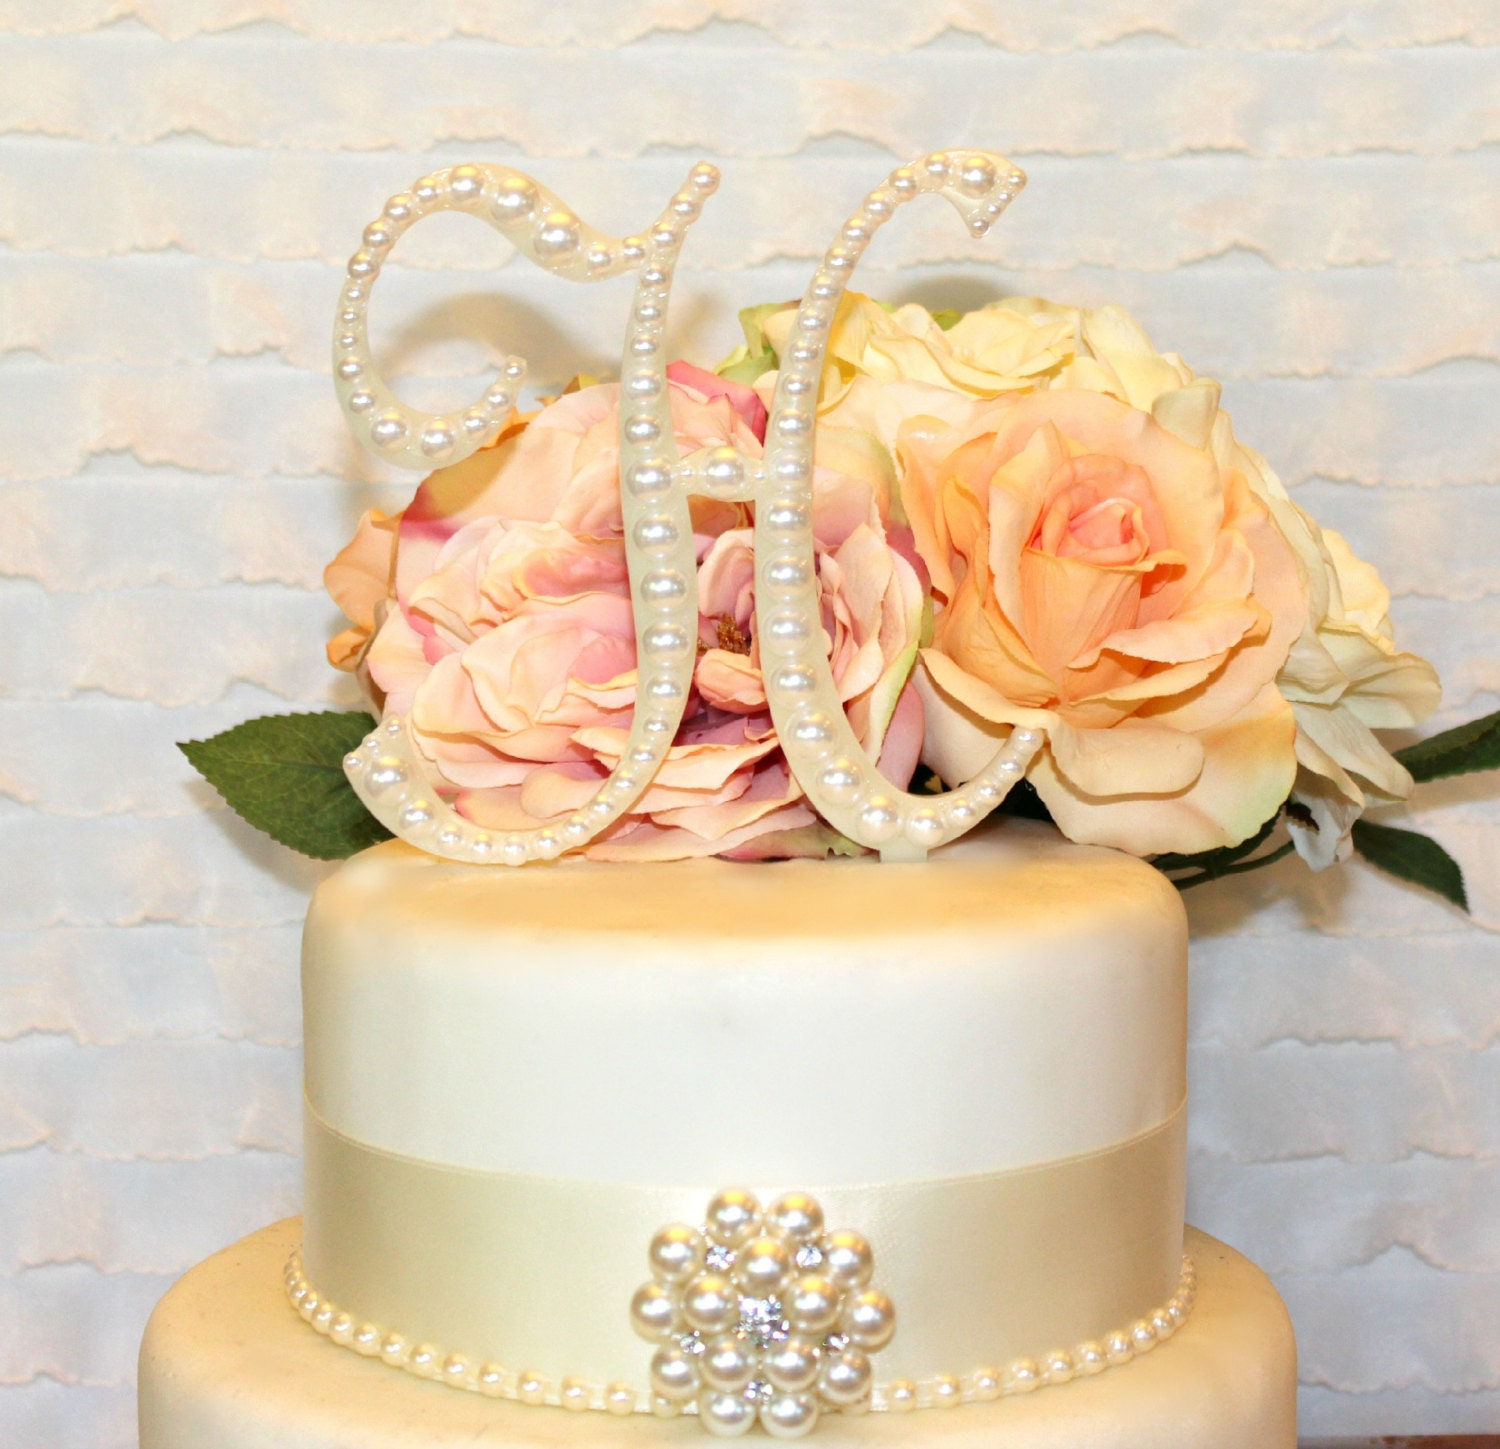 5 Pearl Monogram Vintage Style Wedding Cake by InitialMoments